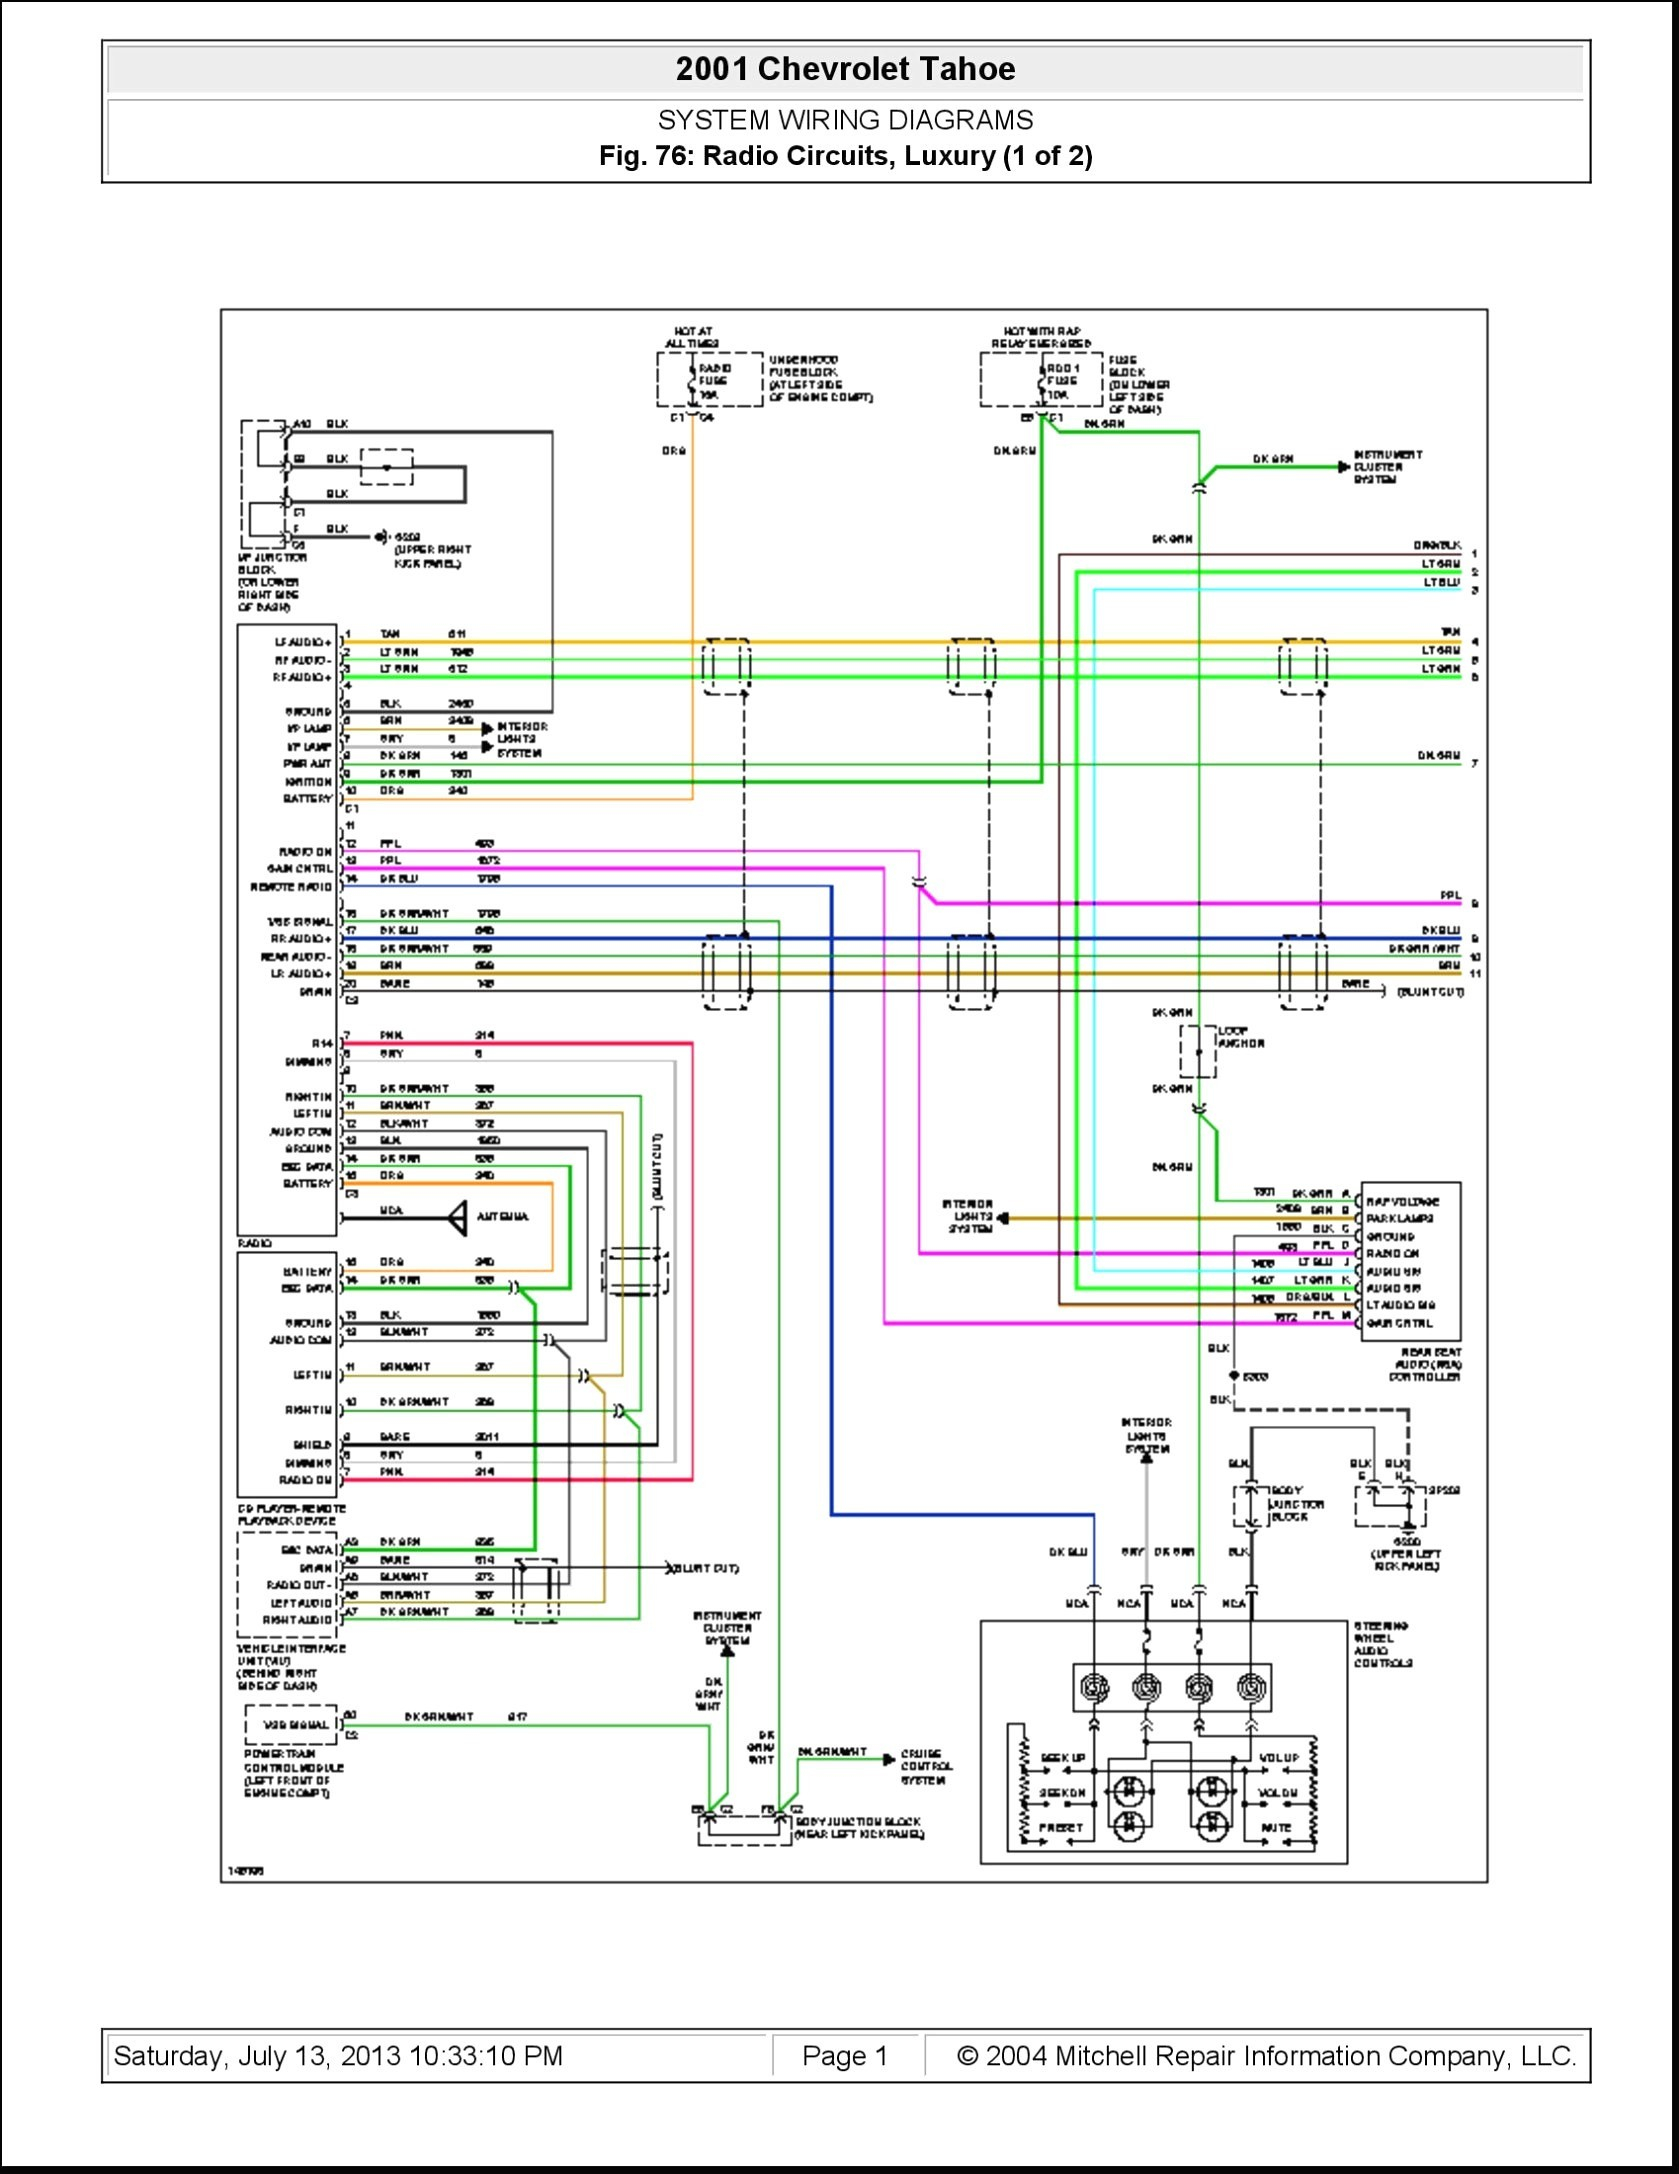 hight resolution of 95 camaro radio wiring diagram wiring diagram centre 1998 chevrolet s10 pickup stereo radio wiring diagram 1998 chevy s10 stereo wiring